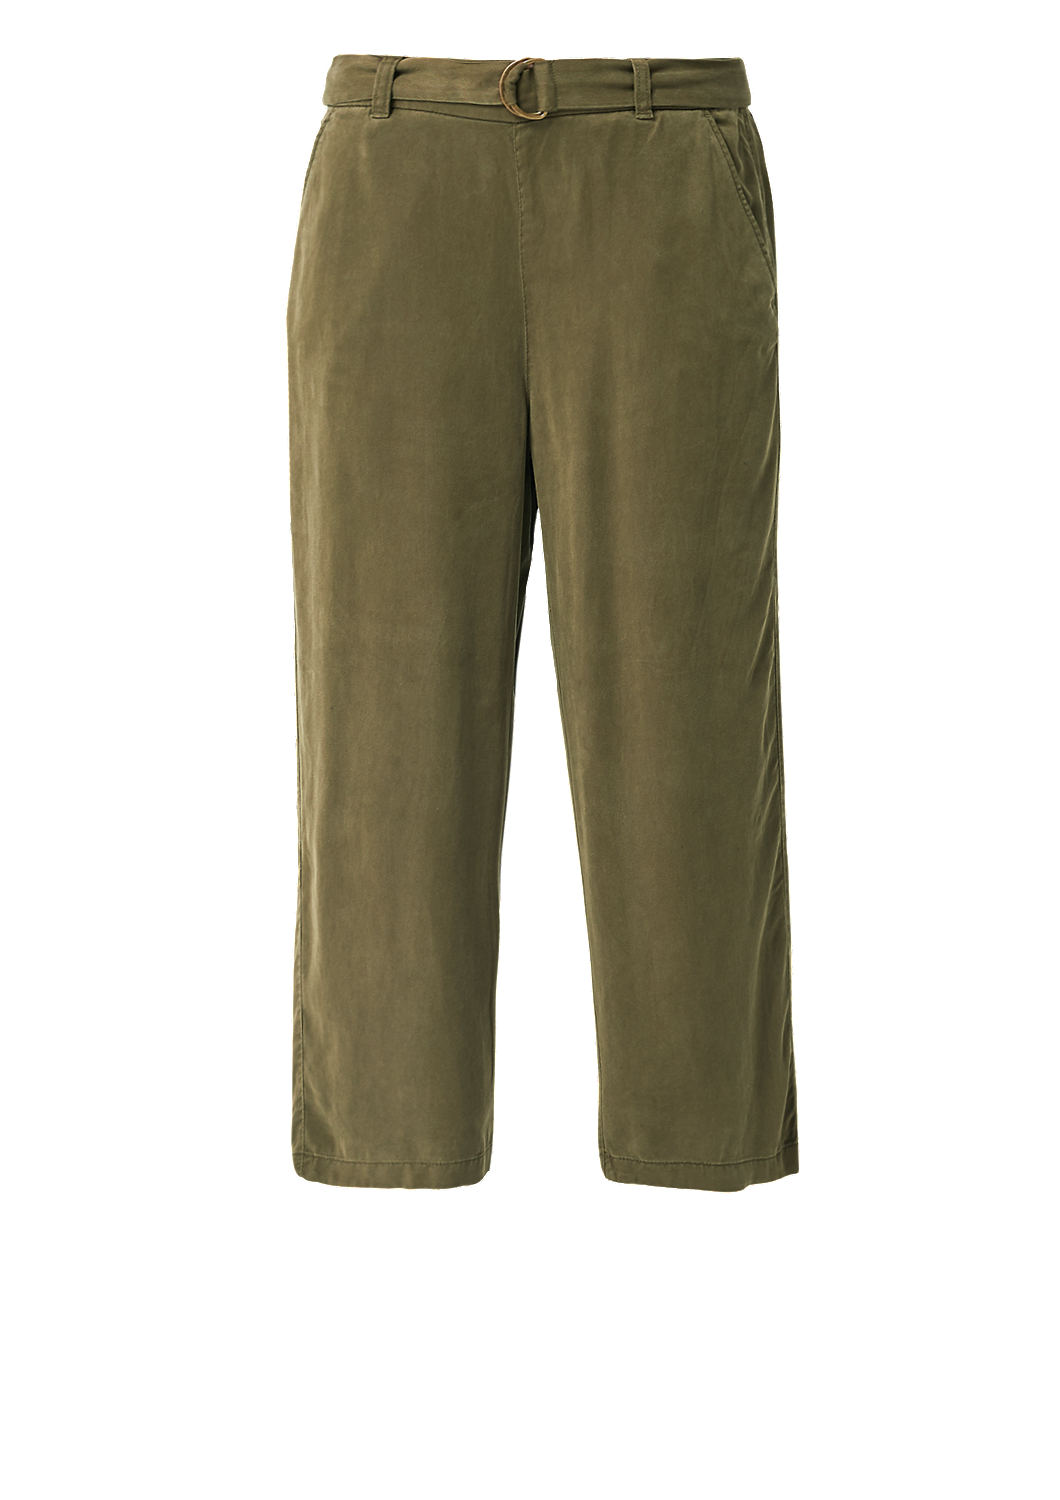 s.Oliver - Culotte: Twillhose aus Lyocell - 4